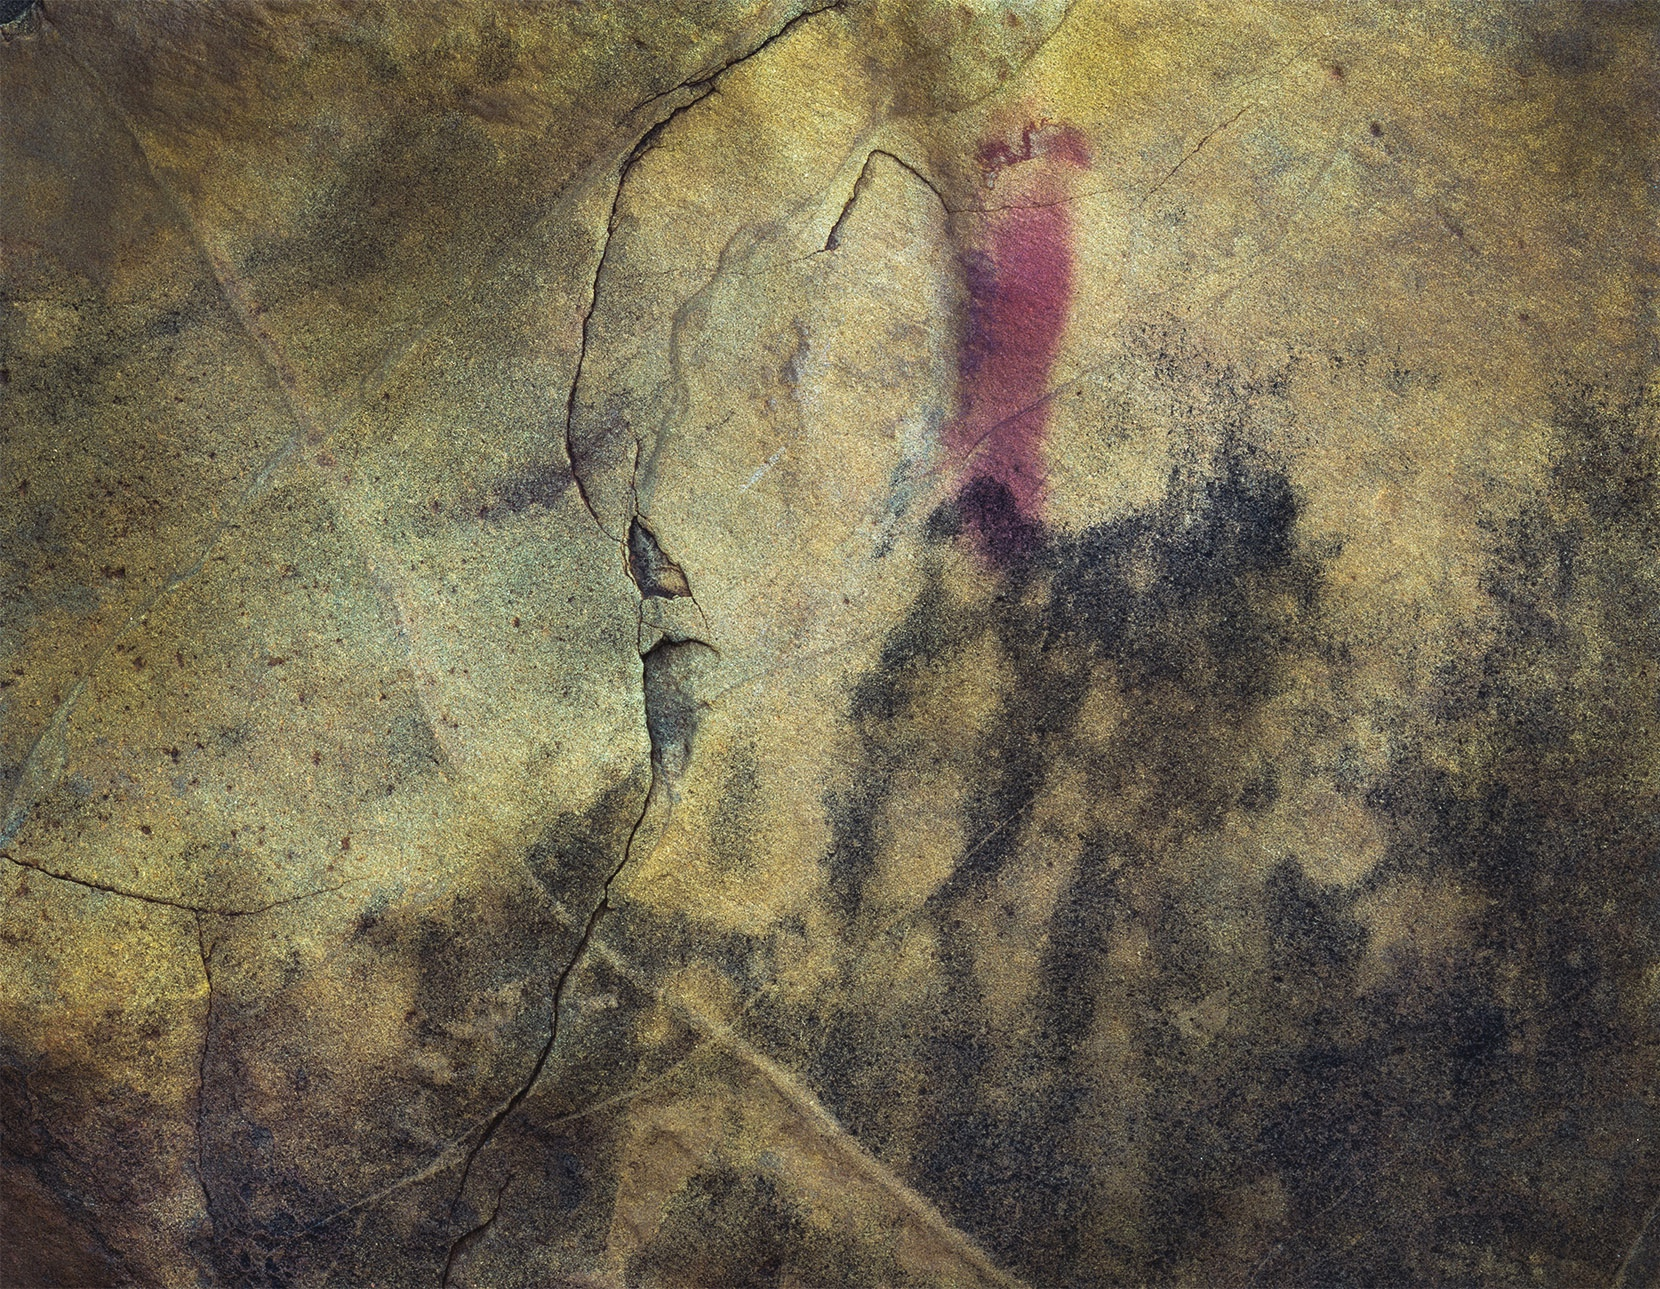 1.+Untitled.+Silver+gelatin+negative%2C+pigment+ink+on+cotton+paper.+110cm+x+156cm%2C+20193.jpg